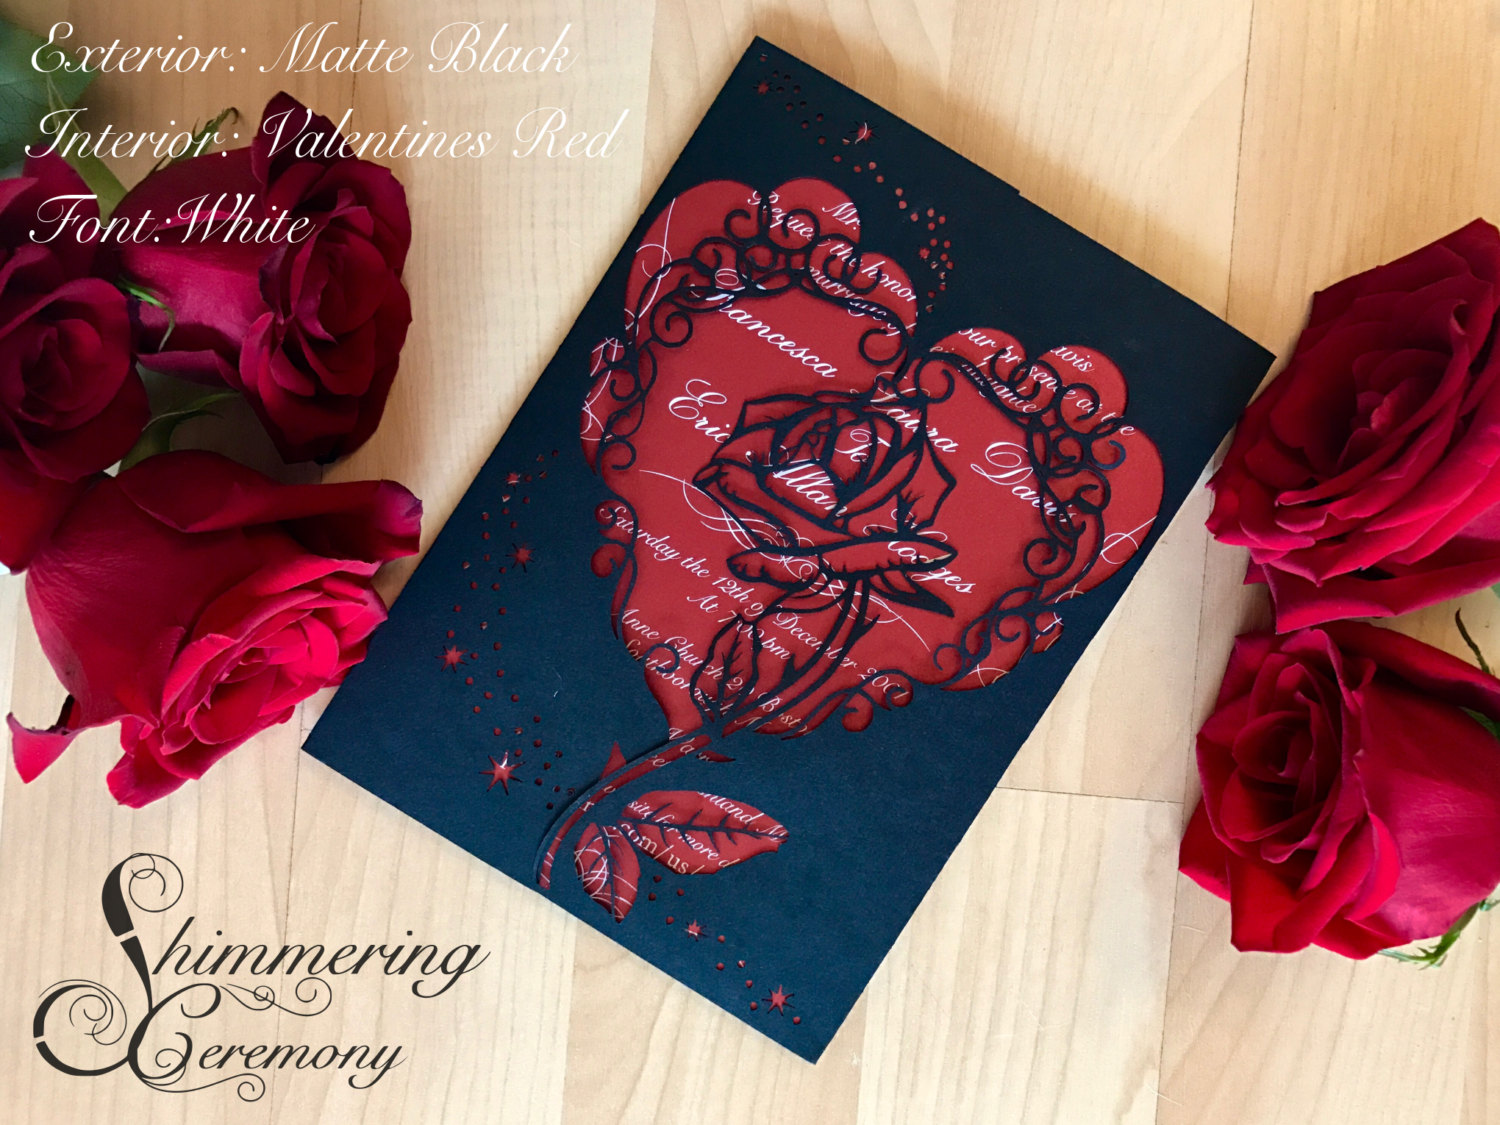 Beauty And The Beast Themed Wedding Invitations: Beauty And The Beast Inspired Wedding Invitation Laser